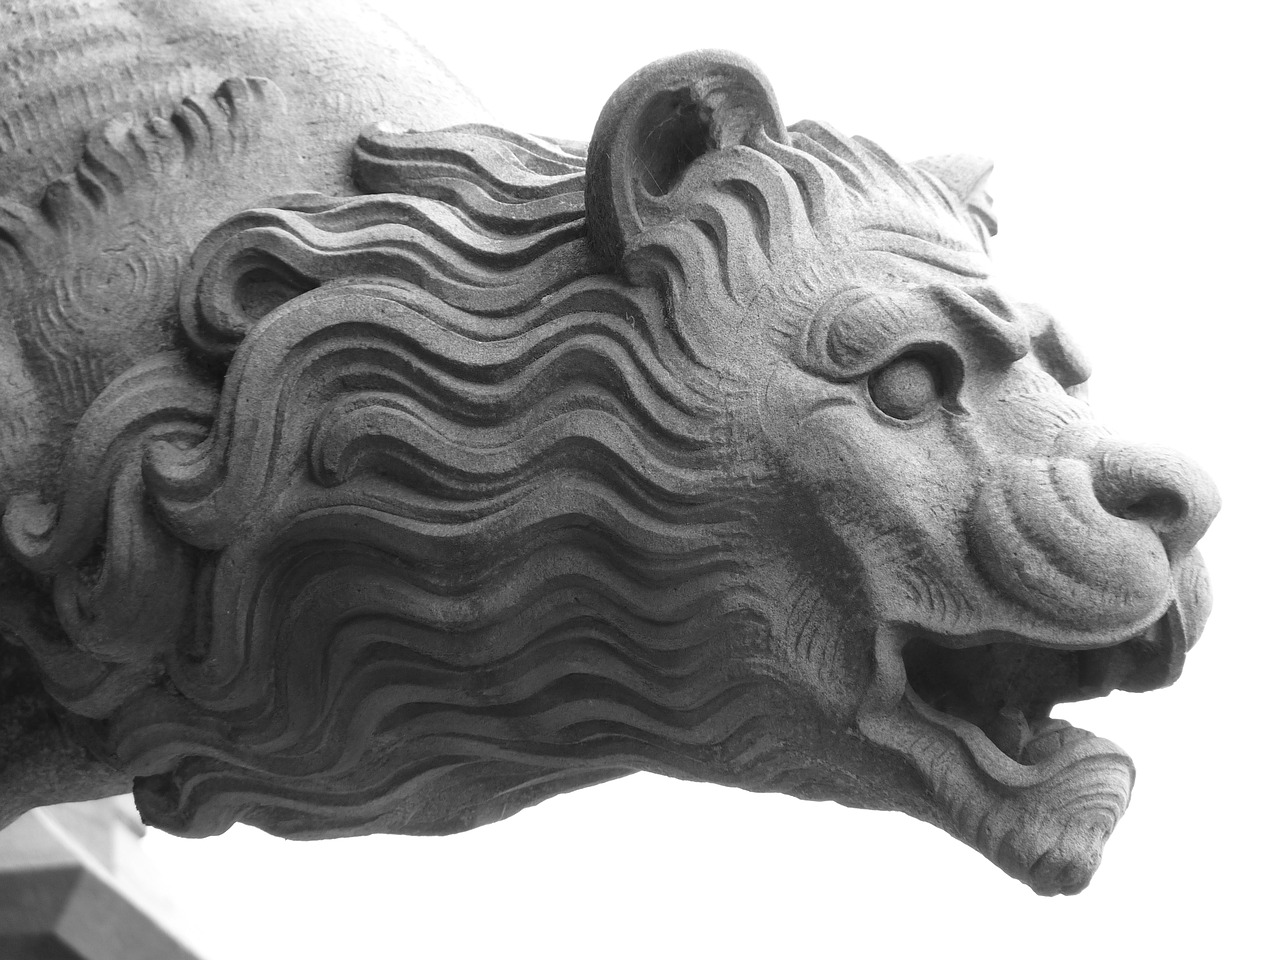 gargoyle lion mythical creatures free photo